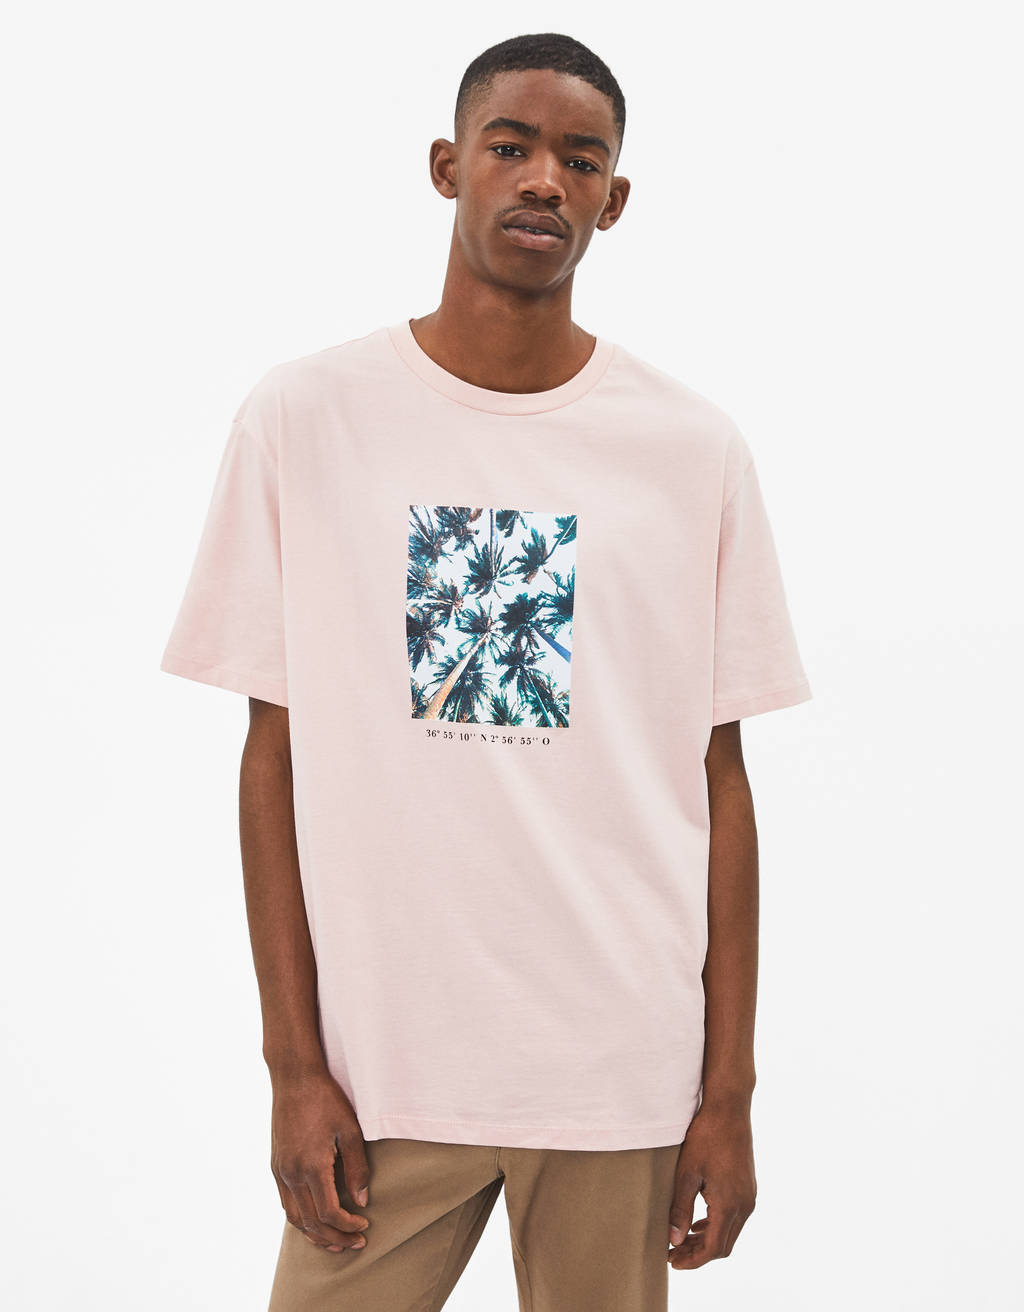 695abb31368 Men's T-Shirts - Summer Sale 2019 | Bershka